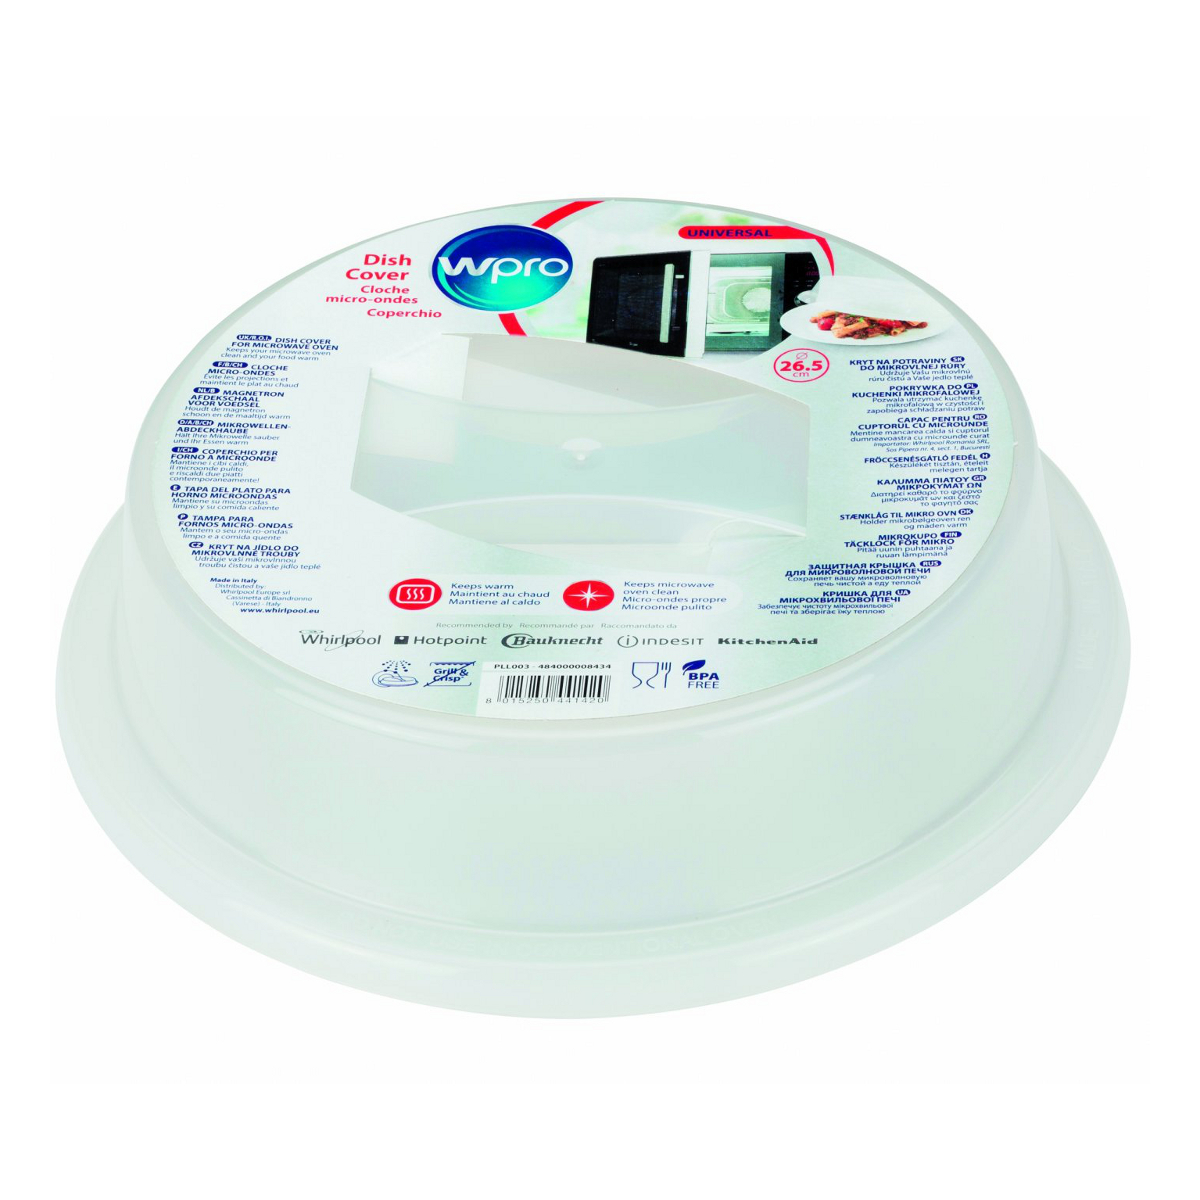 wpro c00335164 dish cover for microwave use 26